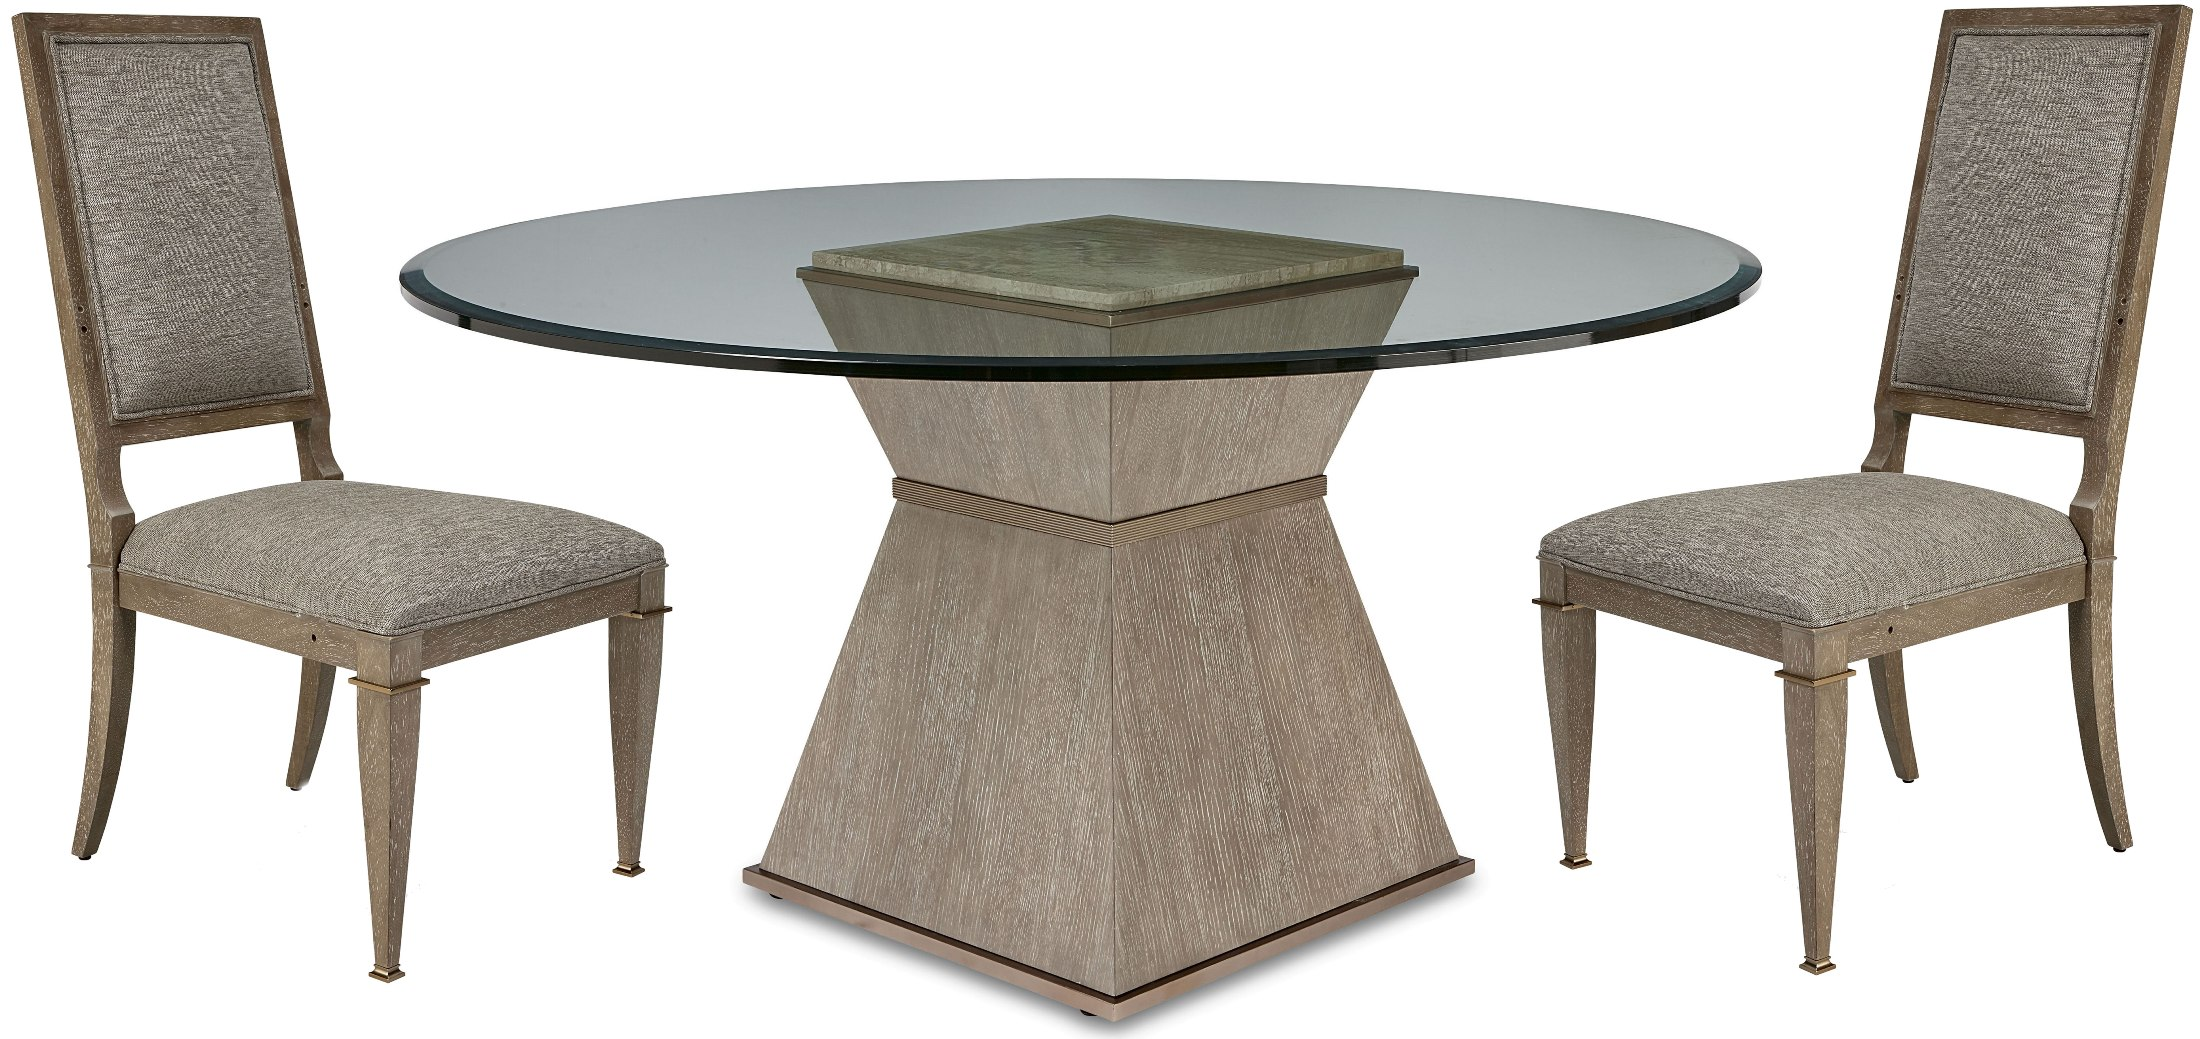 Cityscapes Stone Han 60 Round Dining Room Setmedia Image